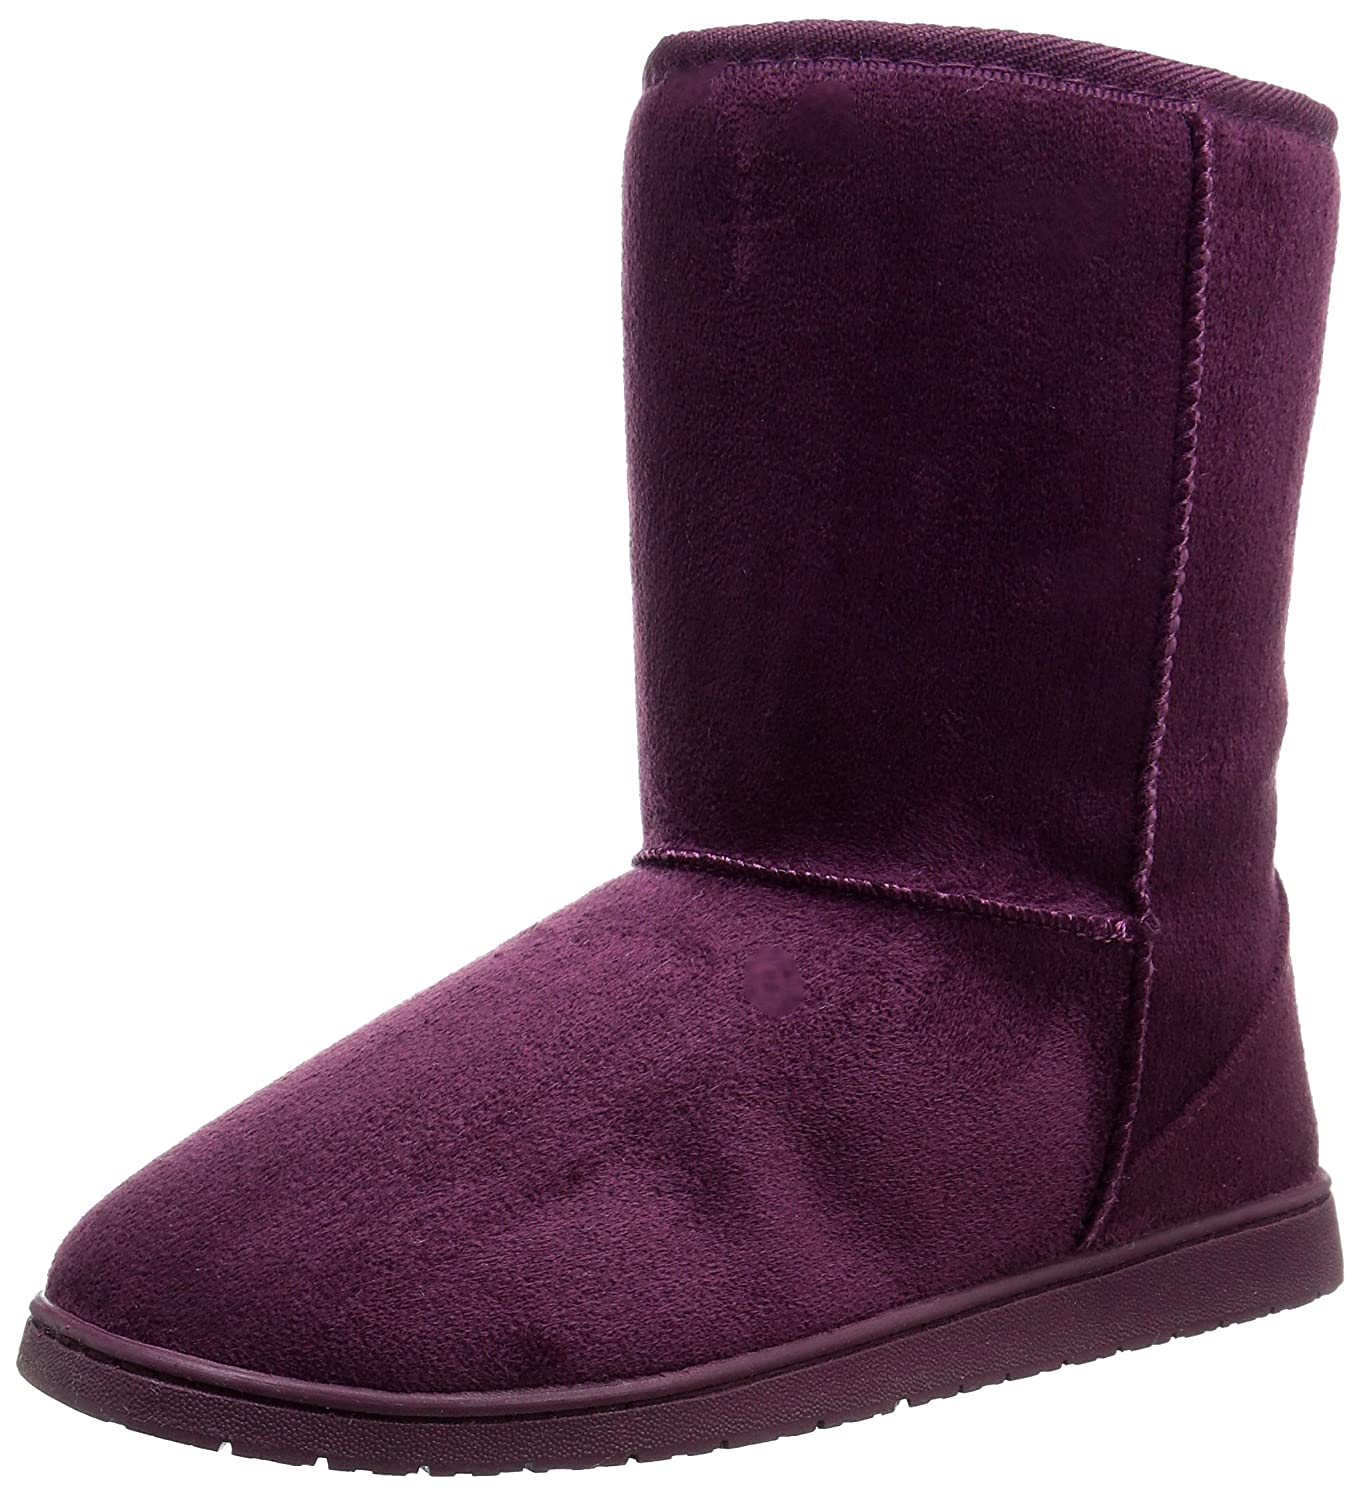 DAWGS Womens 9 Inch Faux Shearling Microfiber Vegan Winter Boots B00PTLAZJG 9 B(M) US|Plum